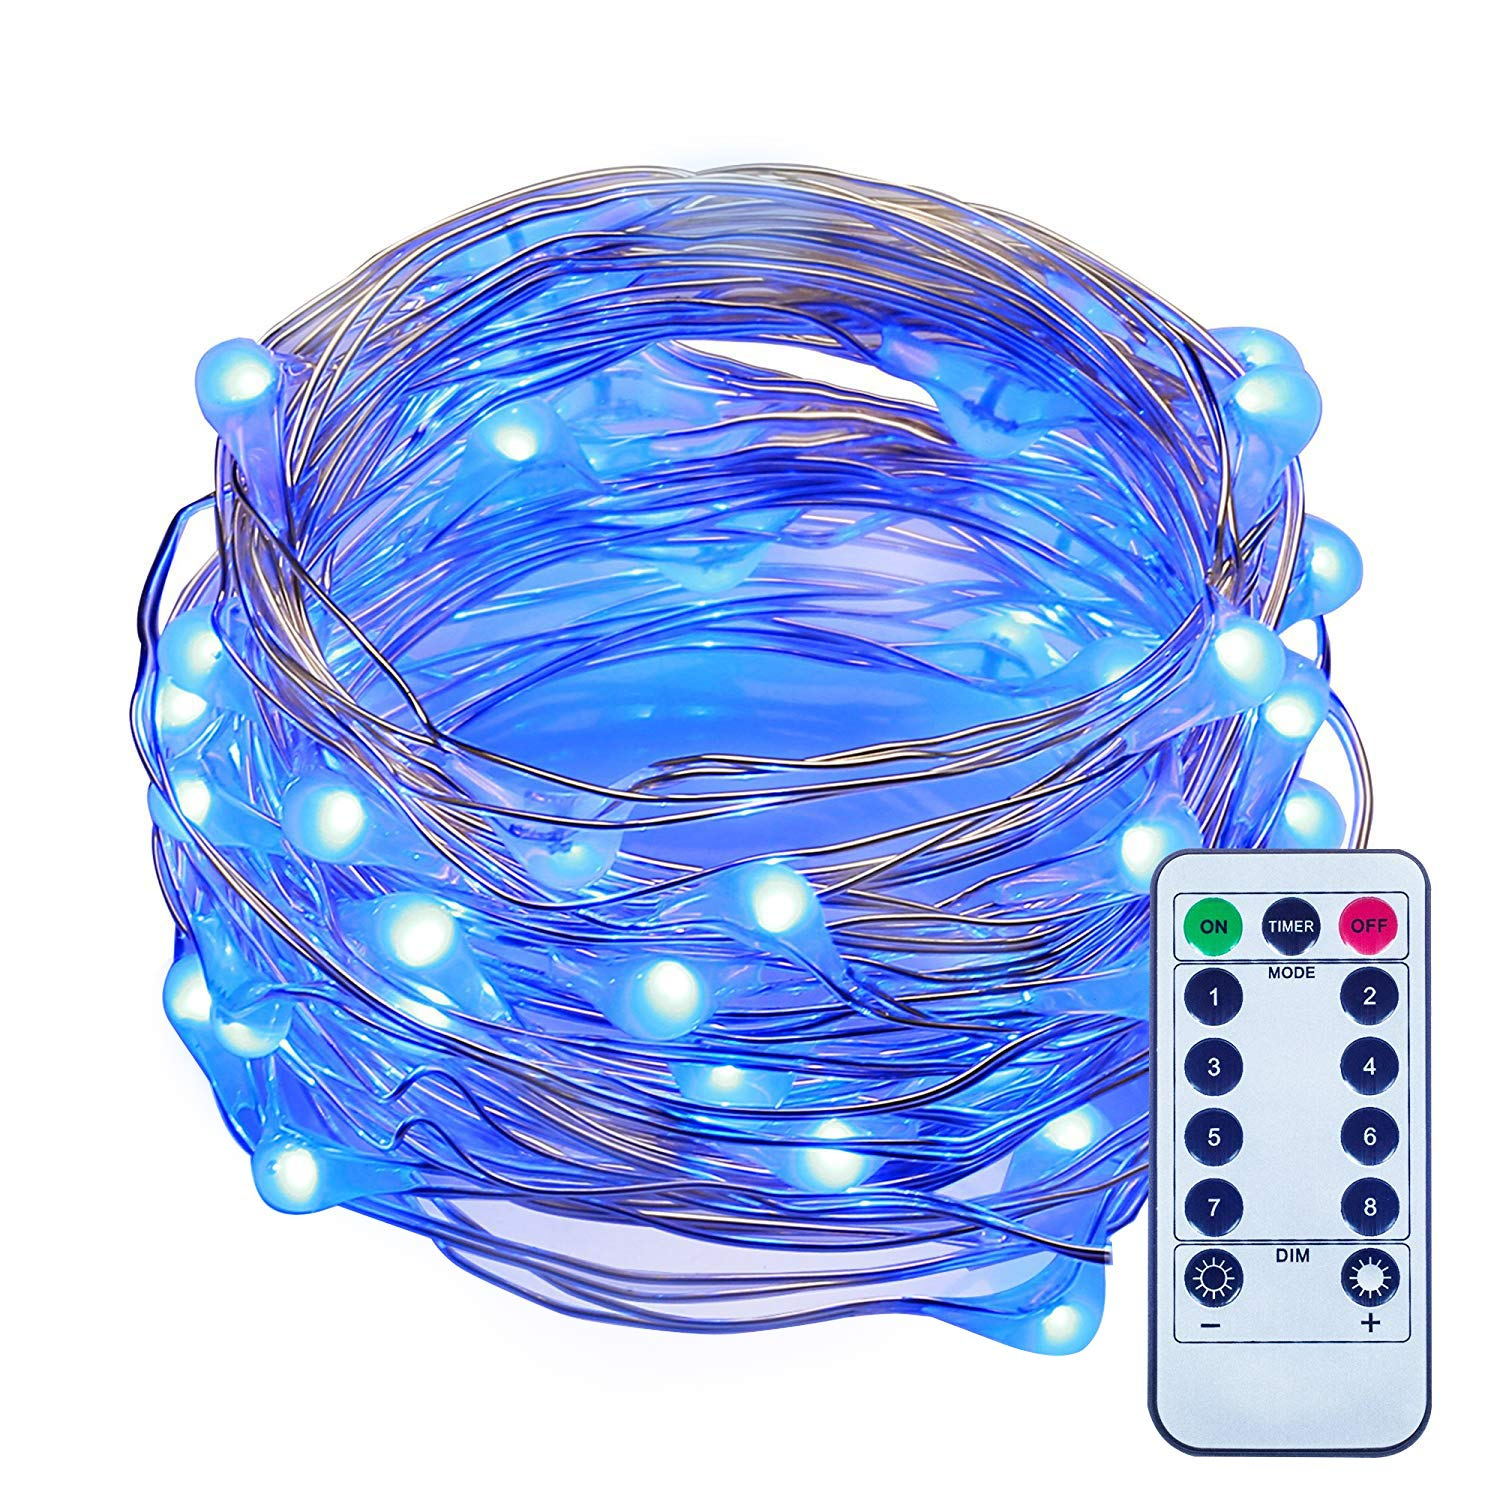 ITART LED String Lights with Remote and Timer Dimmable Mini Fairy Lights Battery Operated Blue 50 LEDs 16.7ft Super Bright Ultra Thin Silver Wire for Christmas Trees Wedding Bedroom Garden Decoration